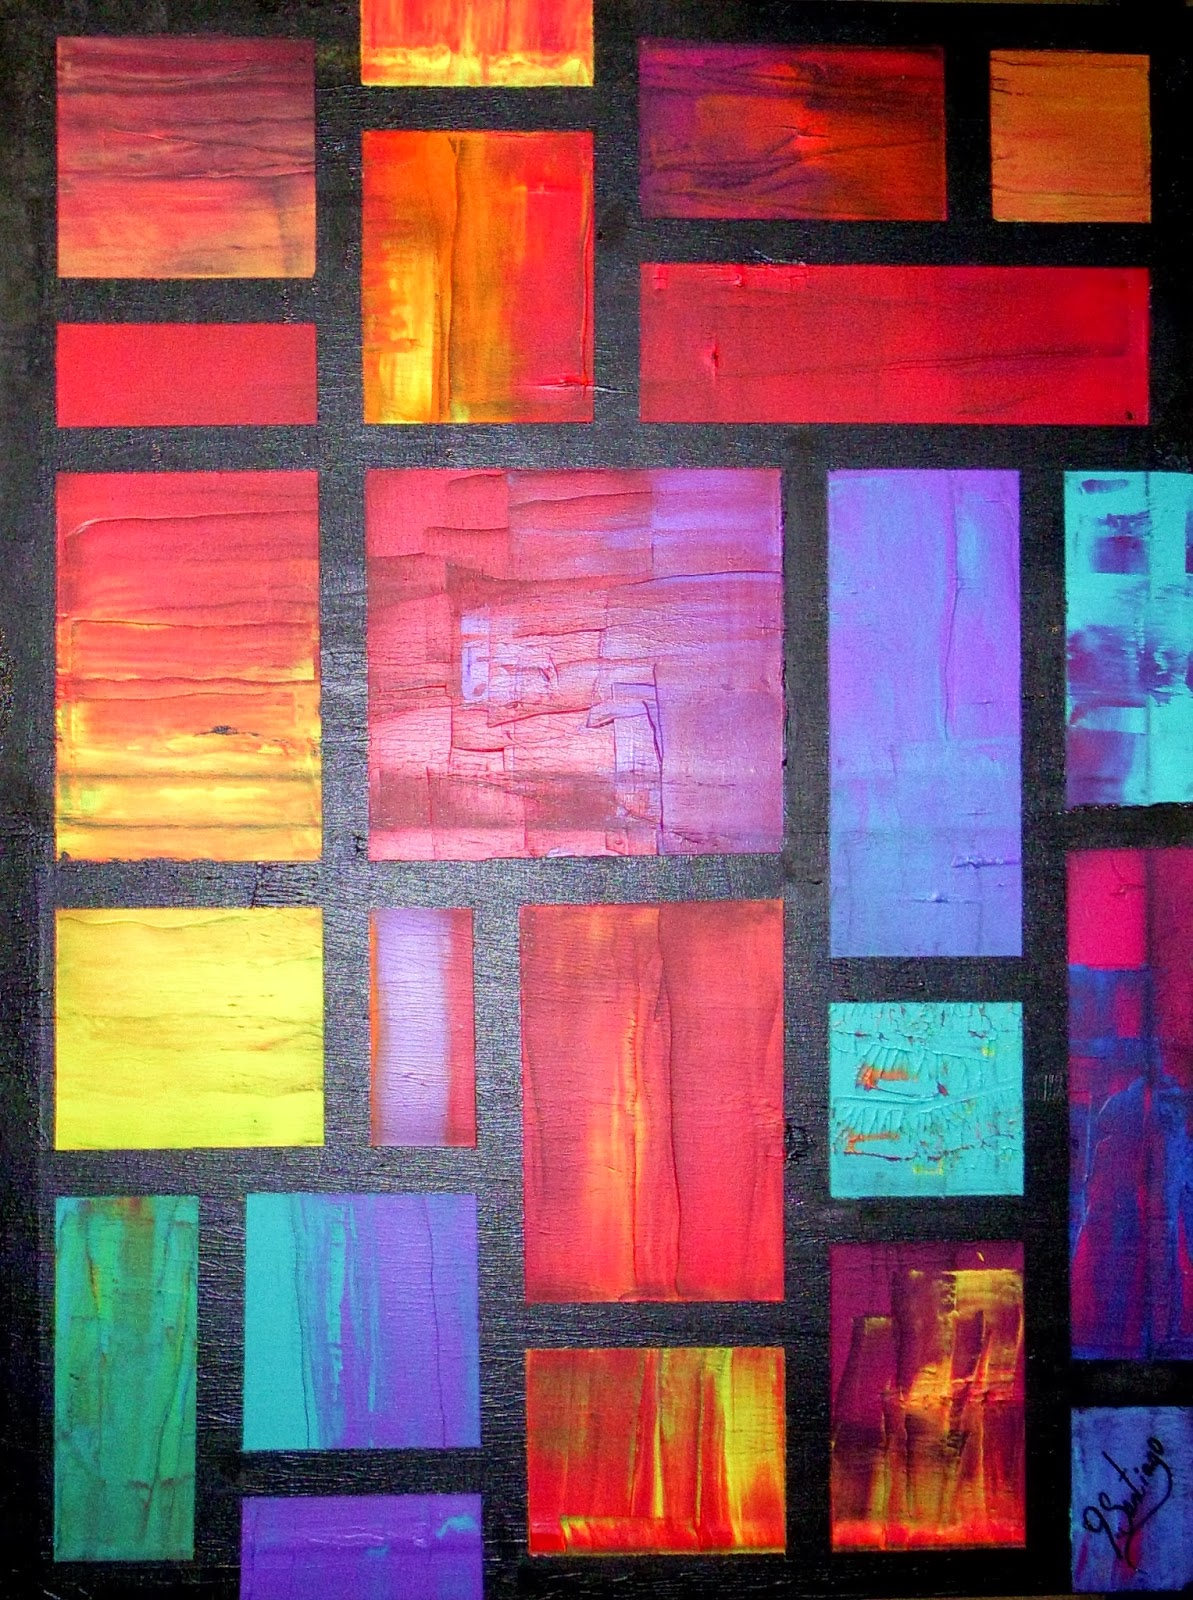 sofa paintings abstract parker knoll bed joey santiago fine art